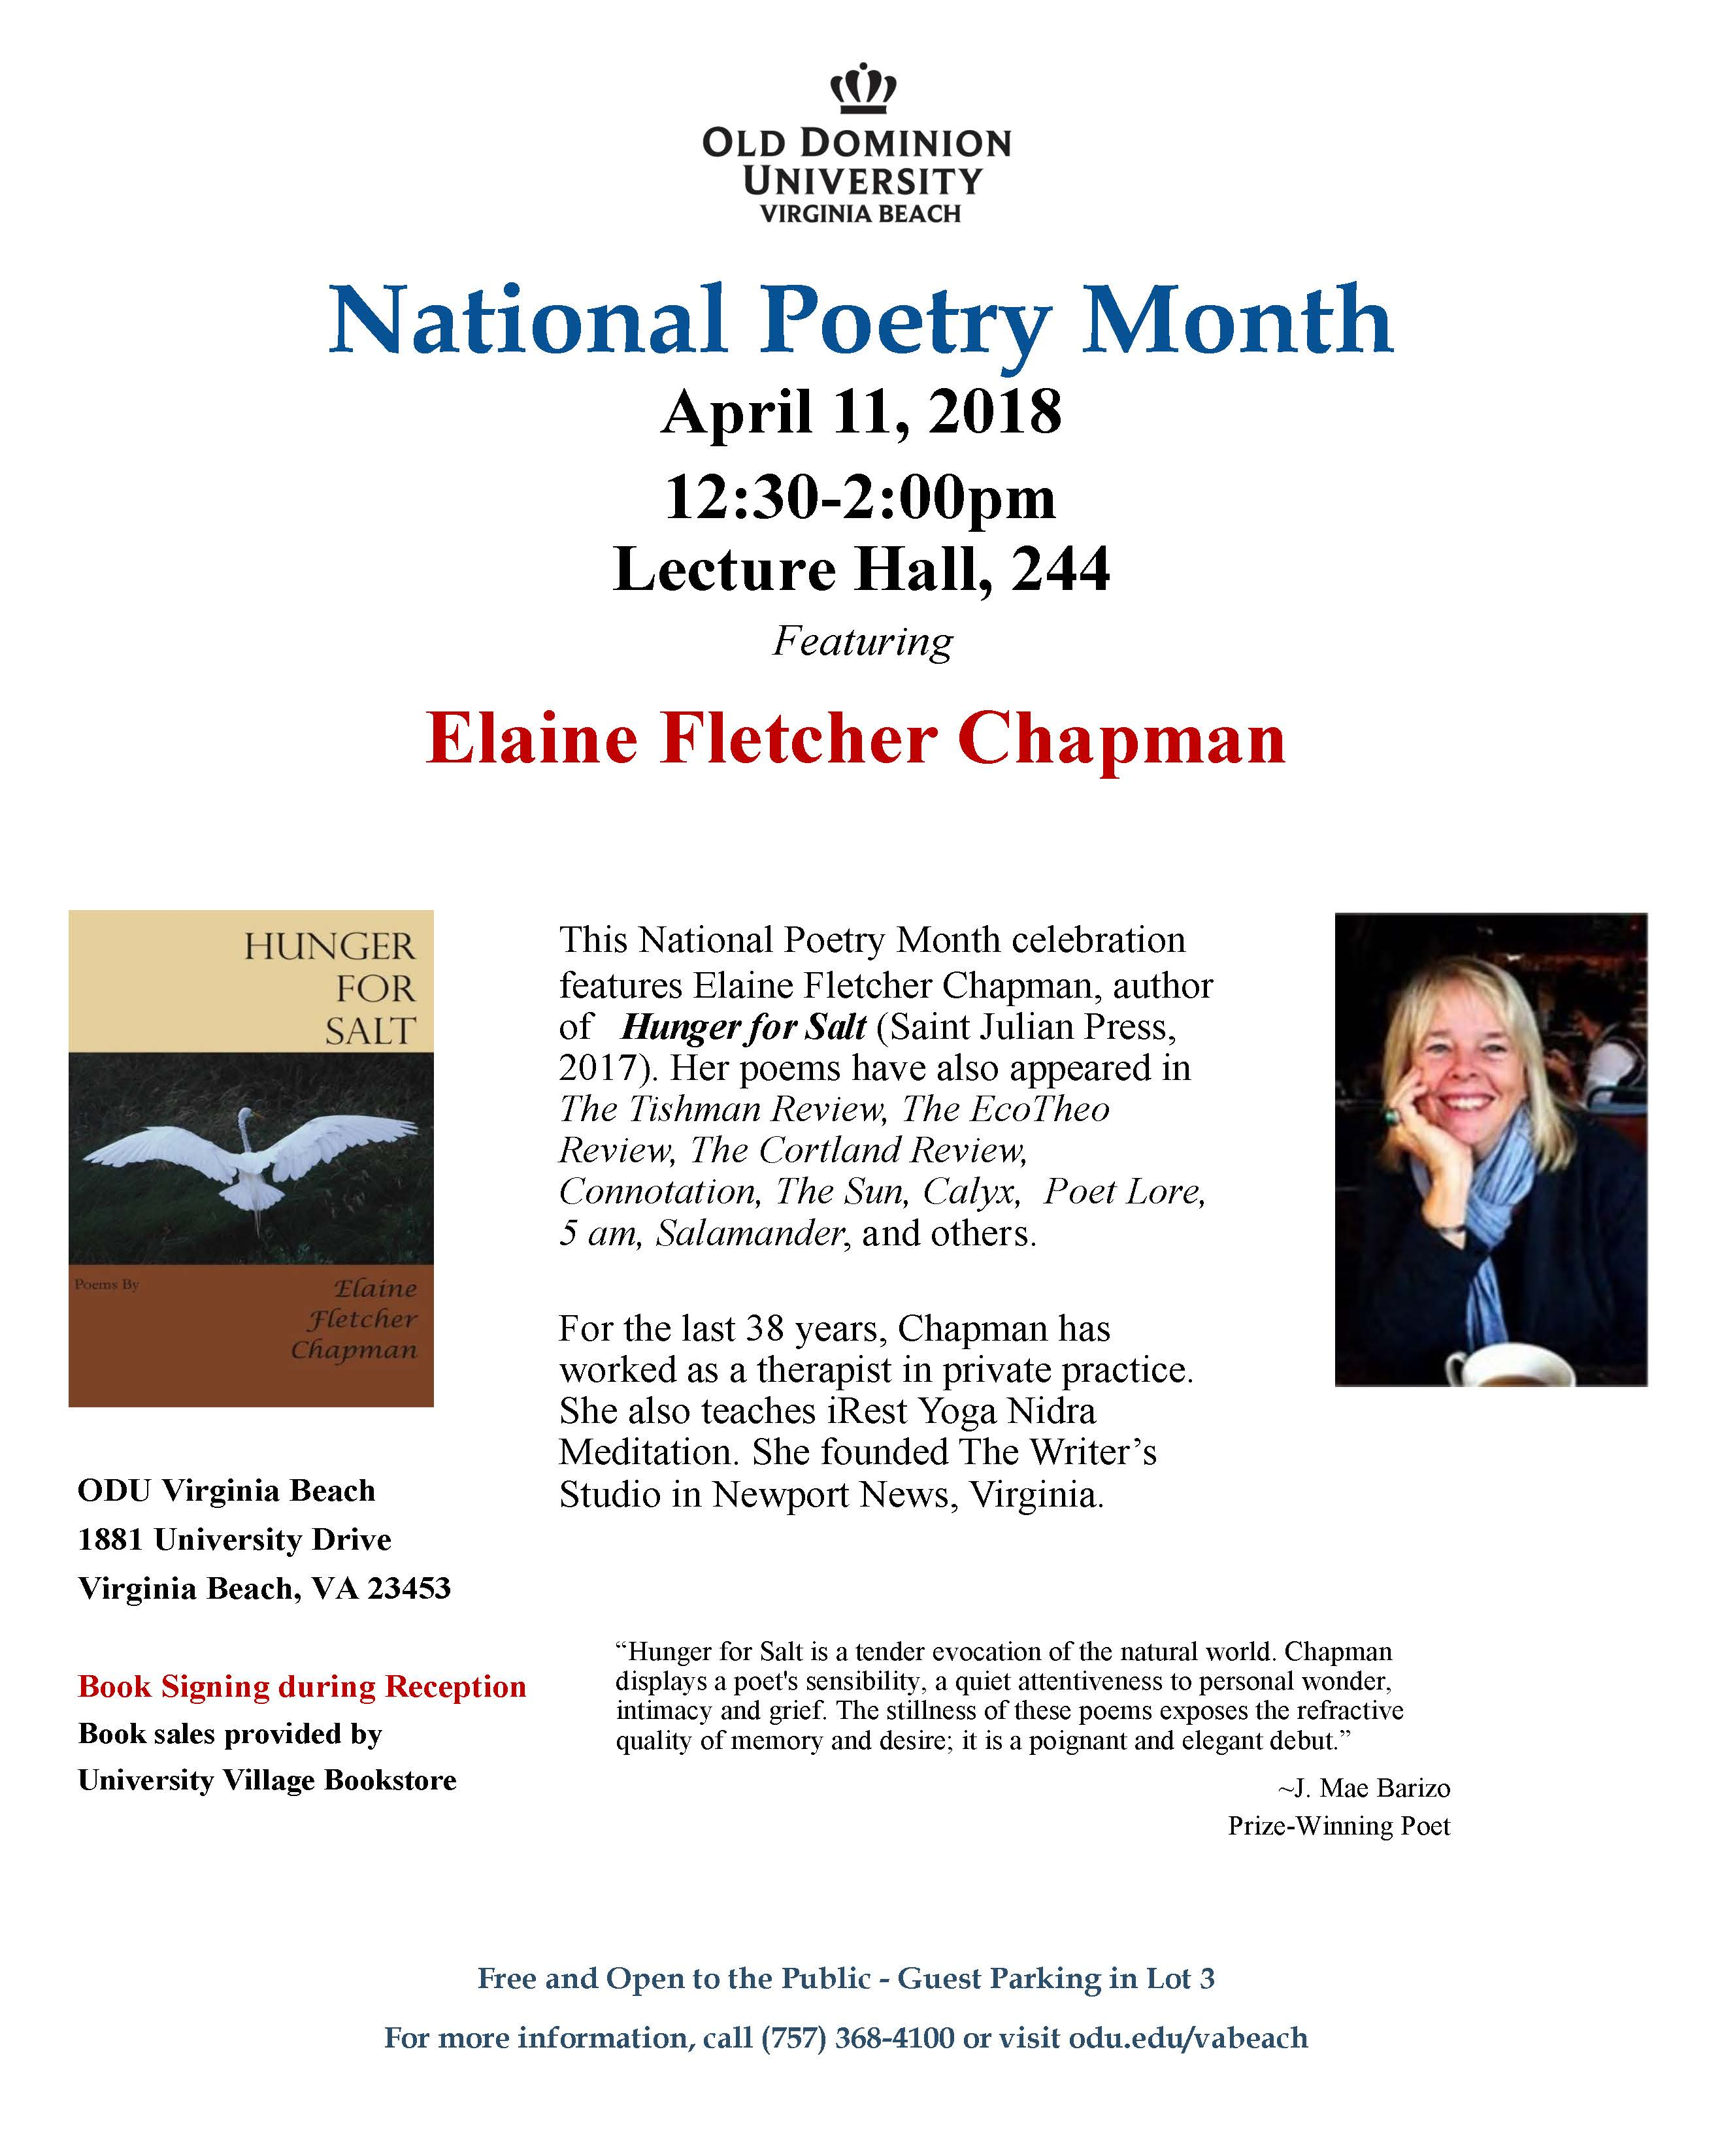 National Poetry Month: Elaine Fletcher Chapman